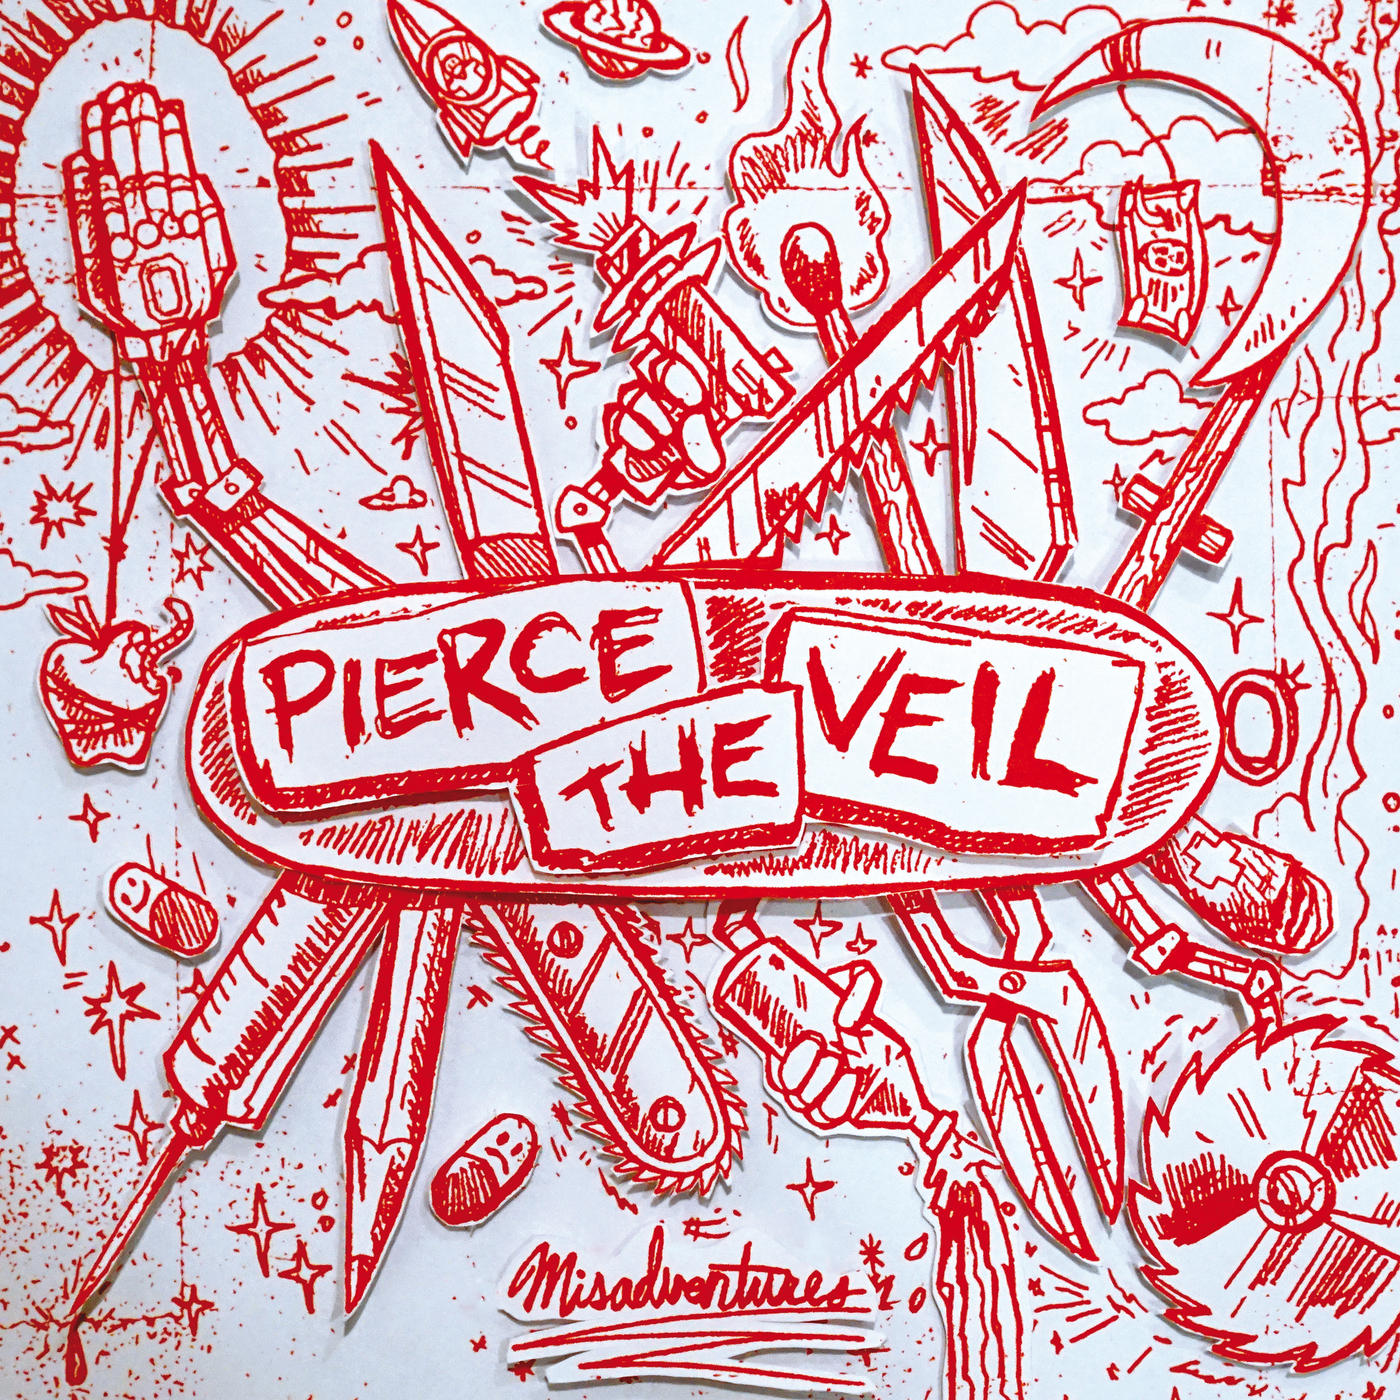 Pierce the Veil - Circles [single] (2016)